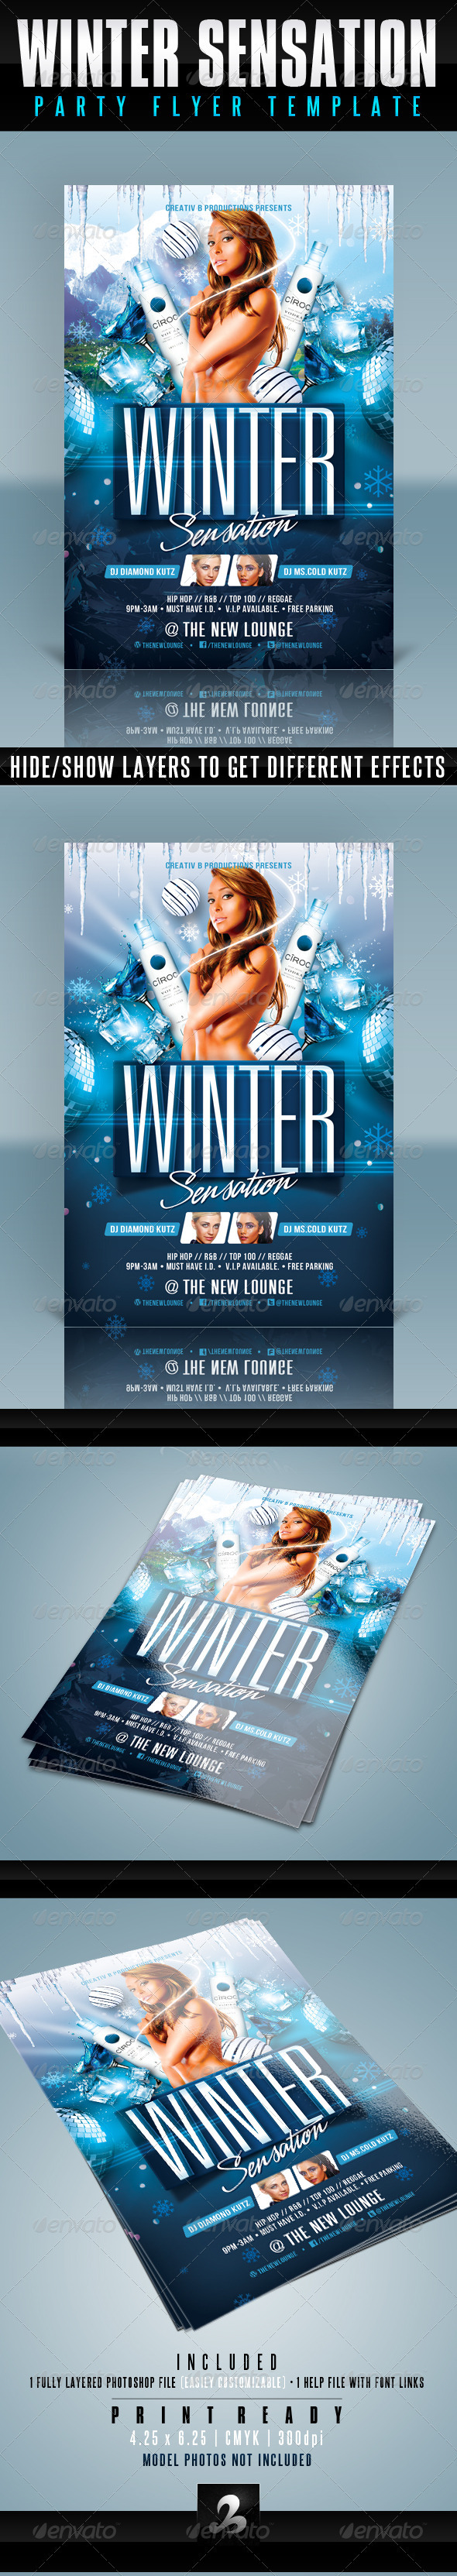 Winter Party Flyer Template - Clubs & Parties Events